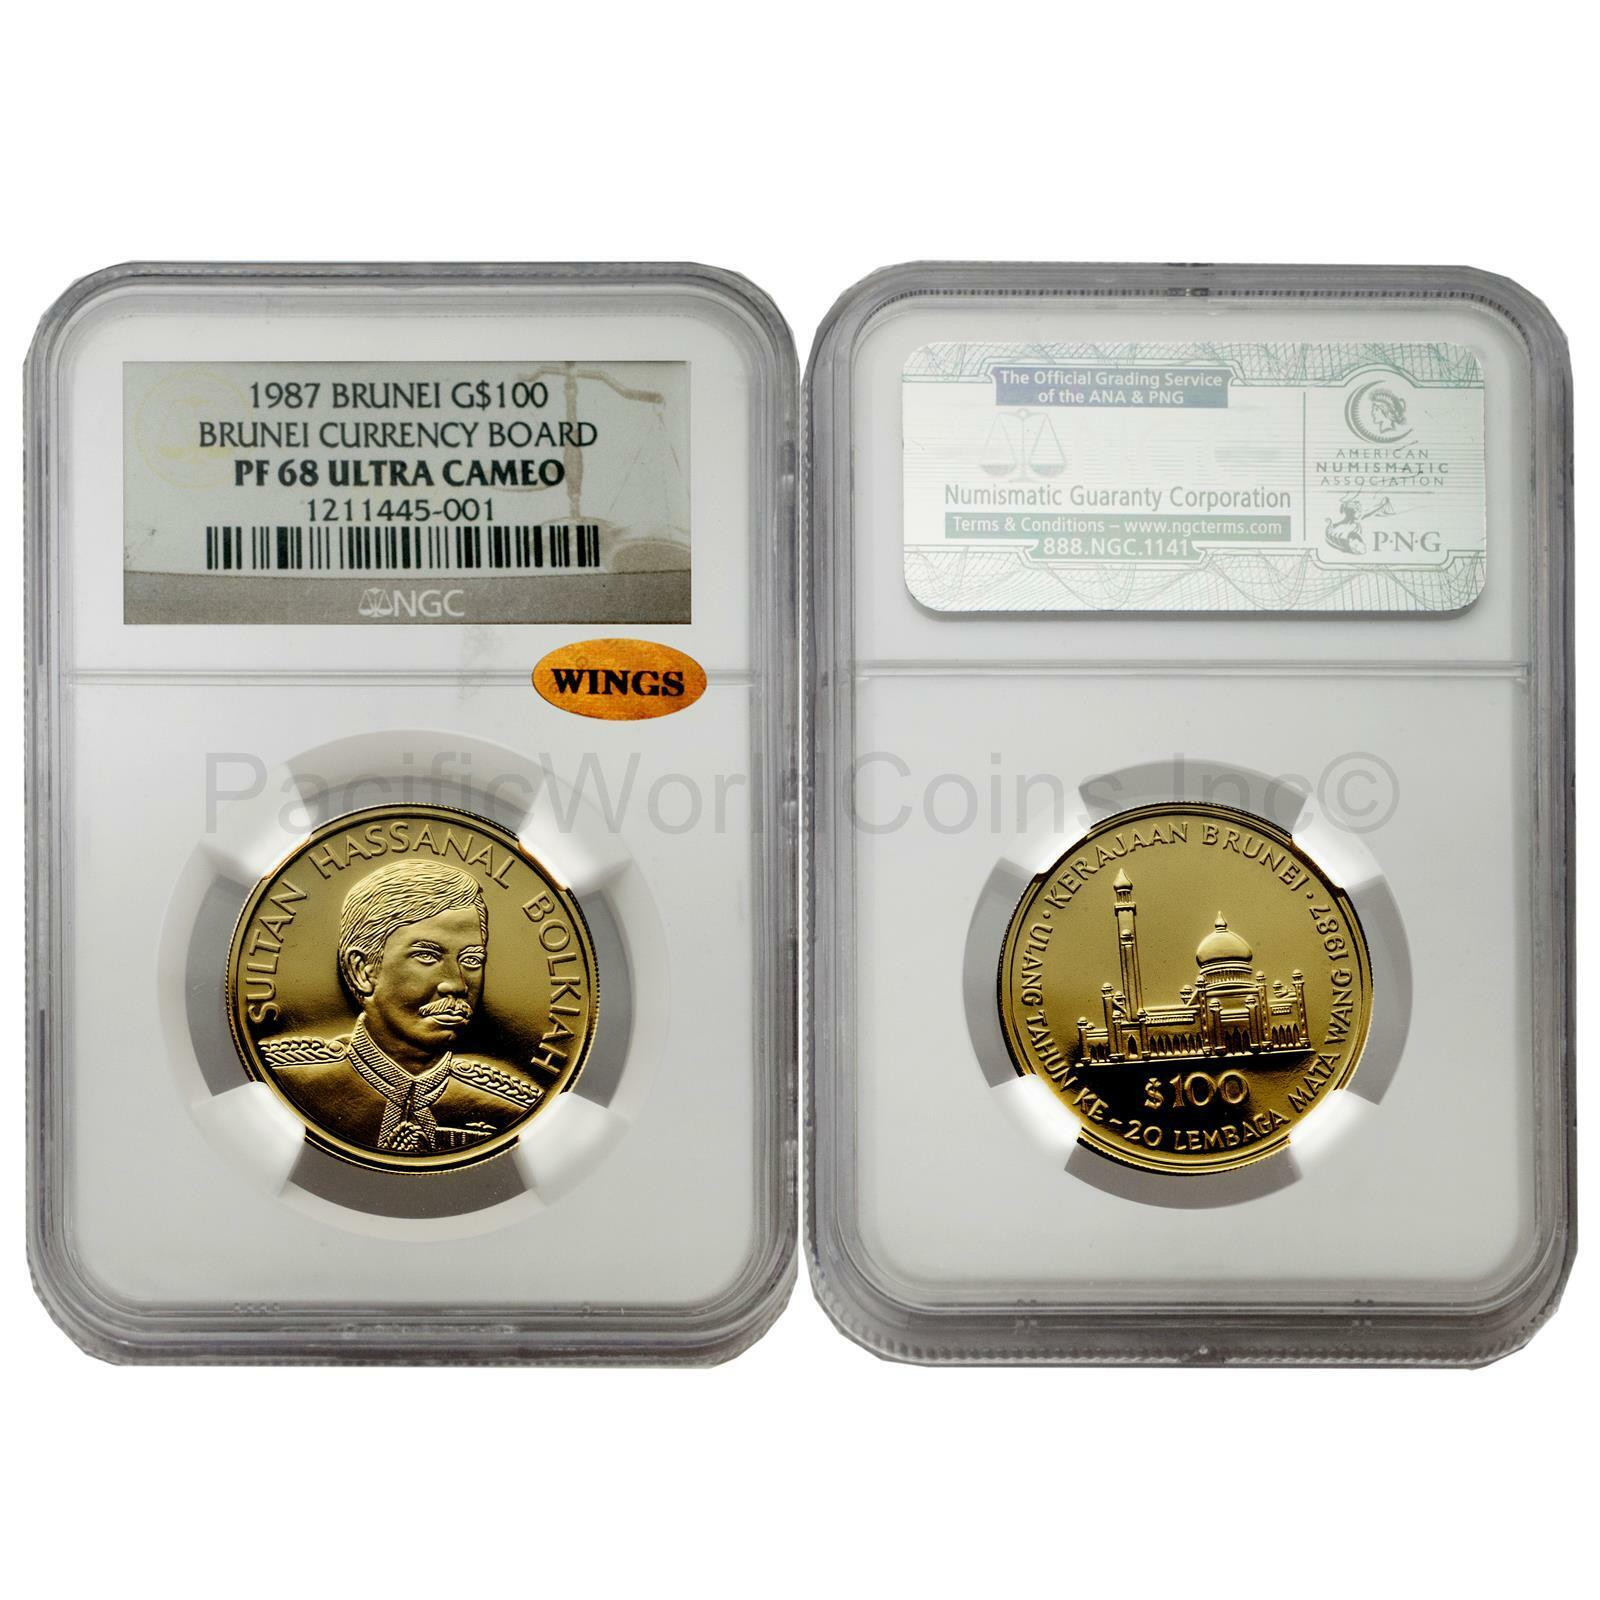 Credit Card Style 1 Gram .9999 GOLD Prepper Currency of the Future